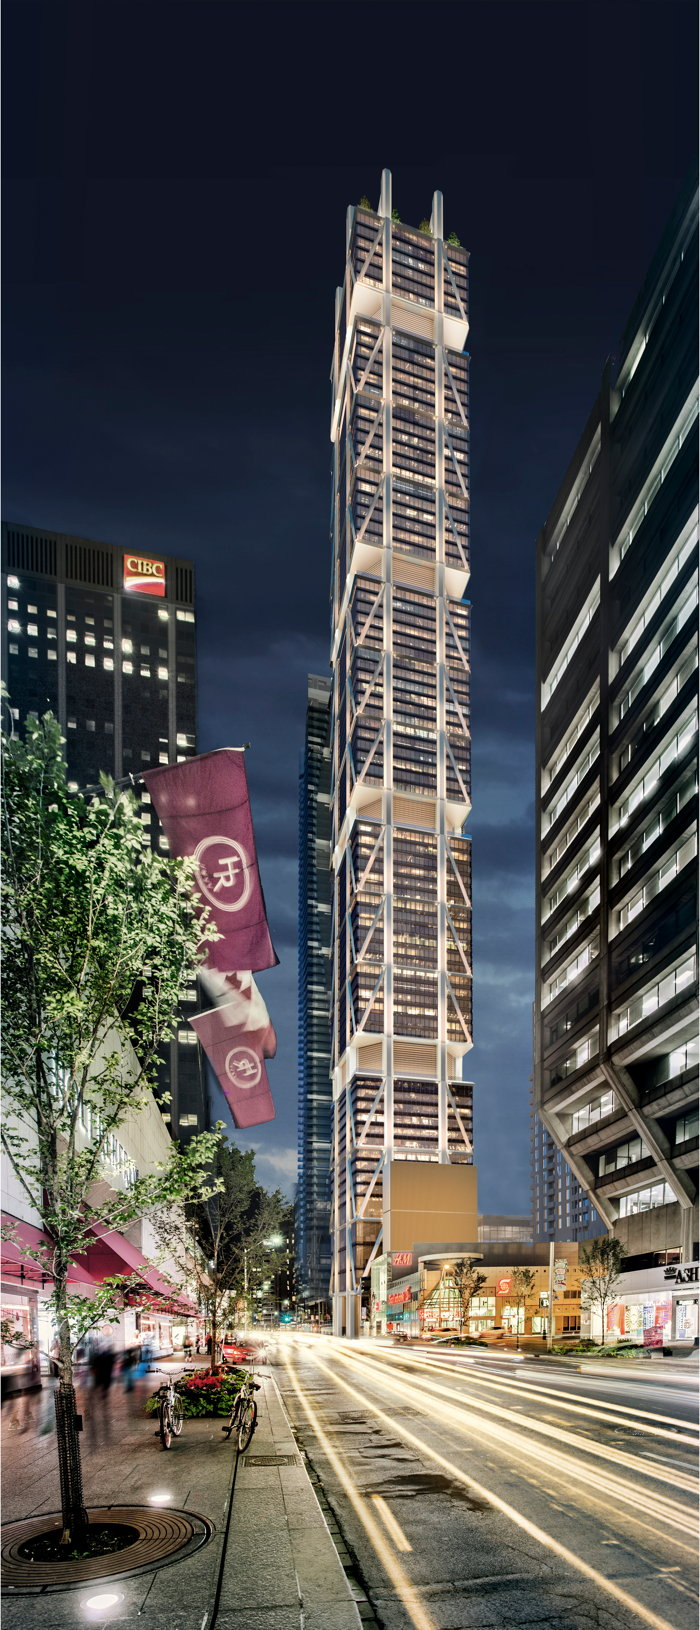 Rendering of the exterior of The One at One Bloor Street West, which will feature the first Andaz hotel in Toronto.